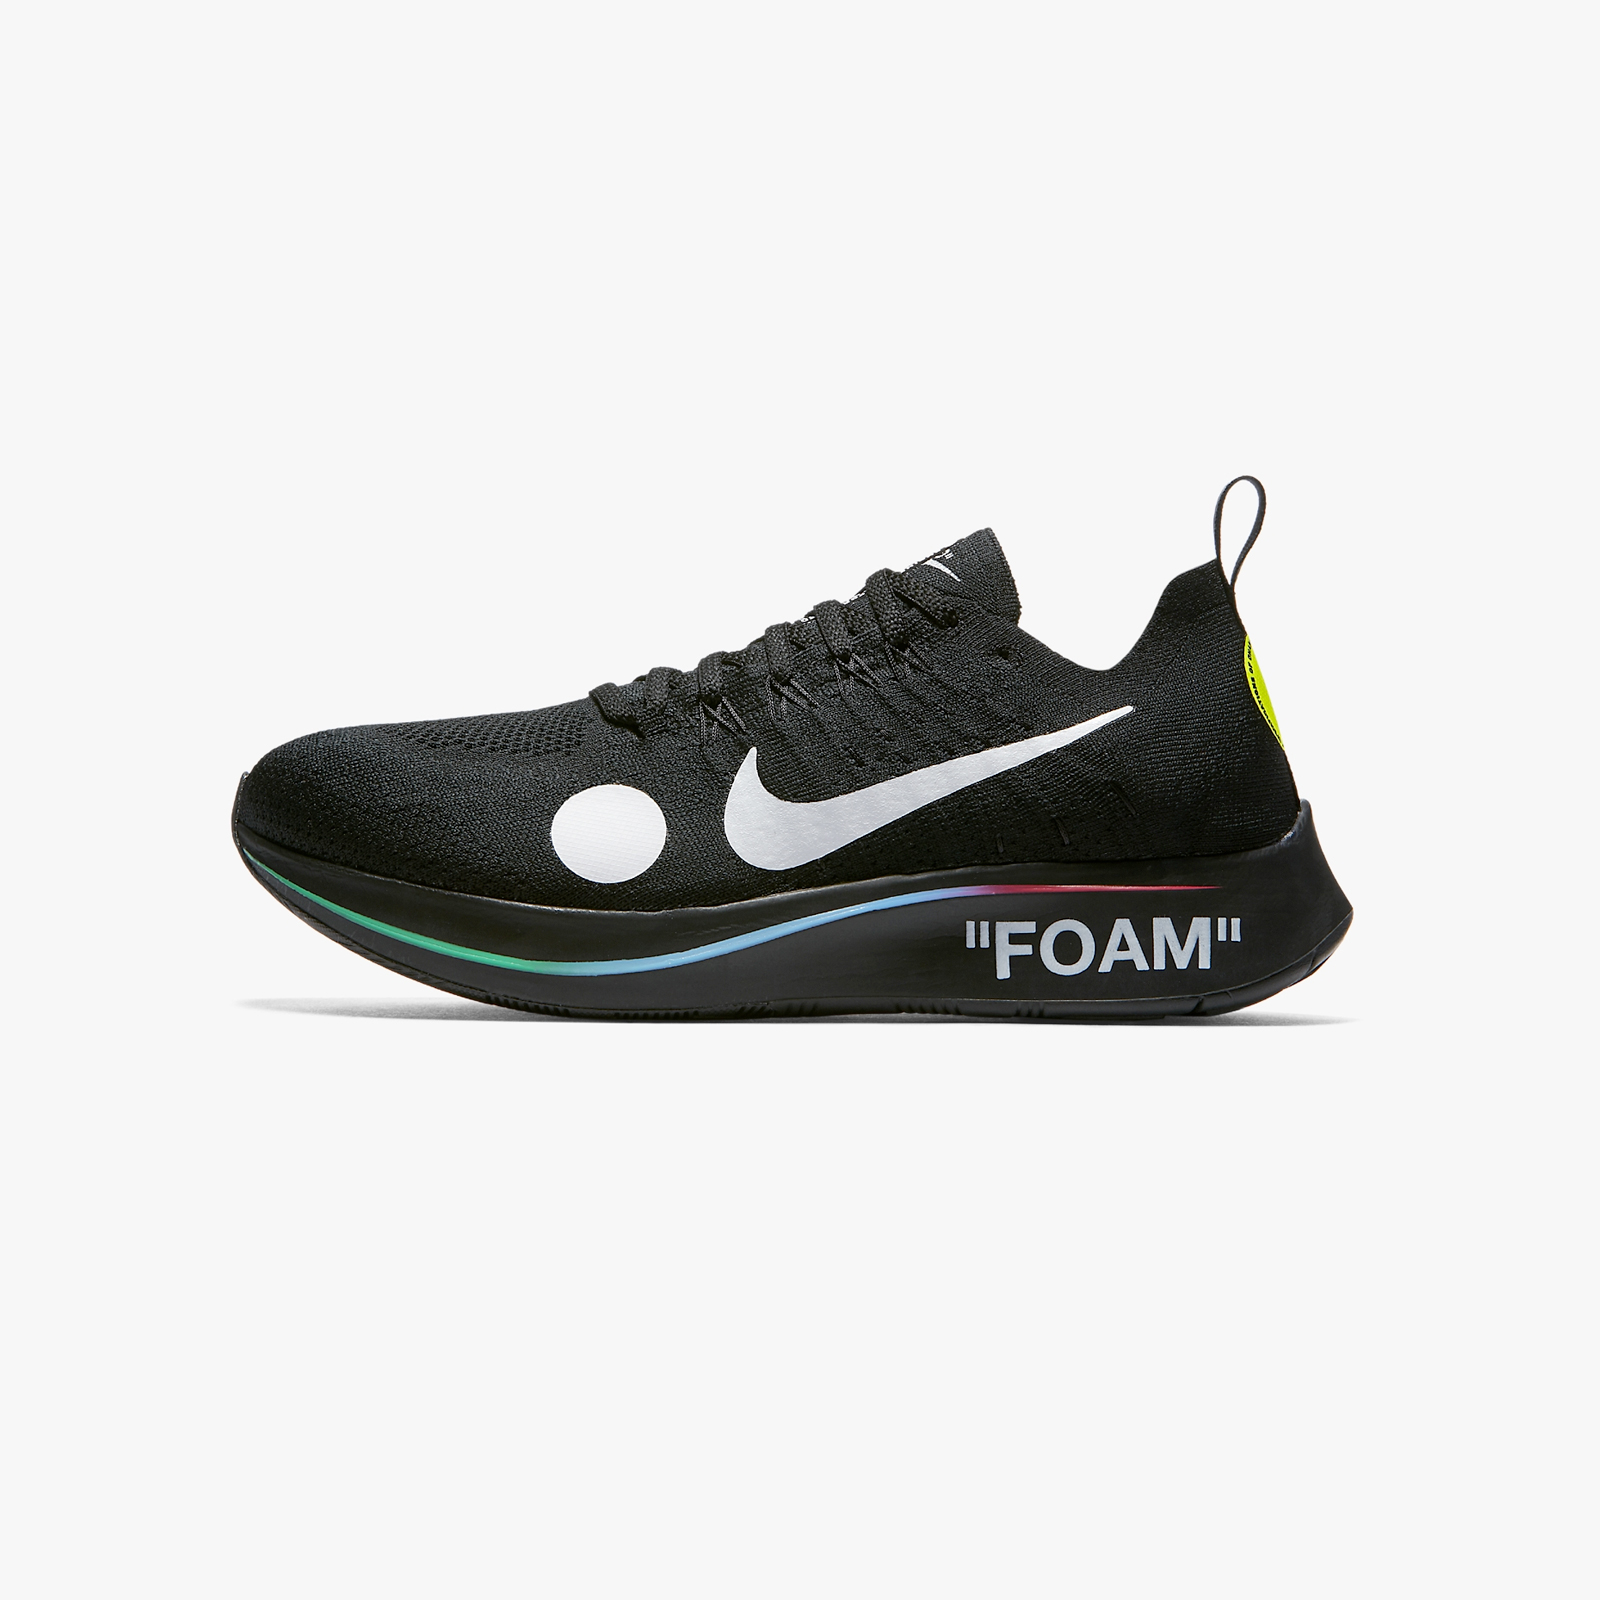 2ceb7ce786870 Nike Zoom Fly Mercurial Flyknit   Off-White - Ao2115-001 - Sneakersnstuff